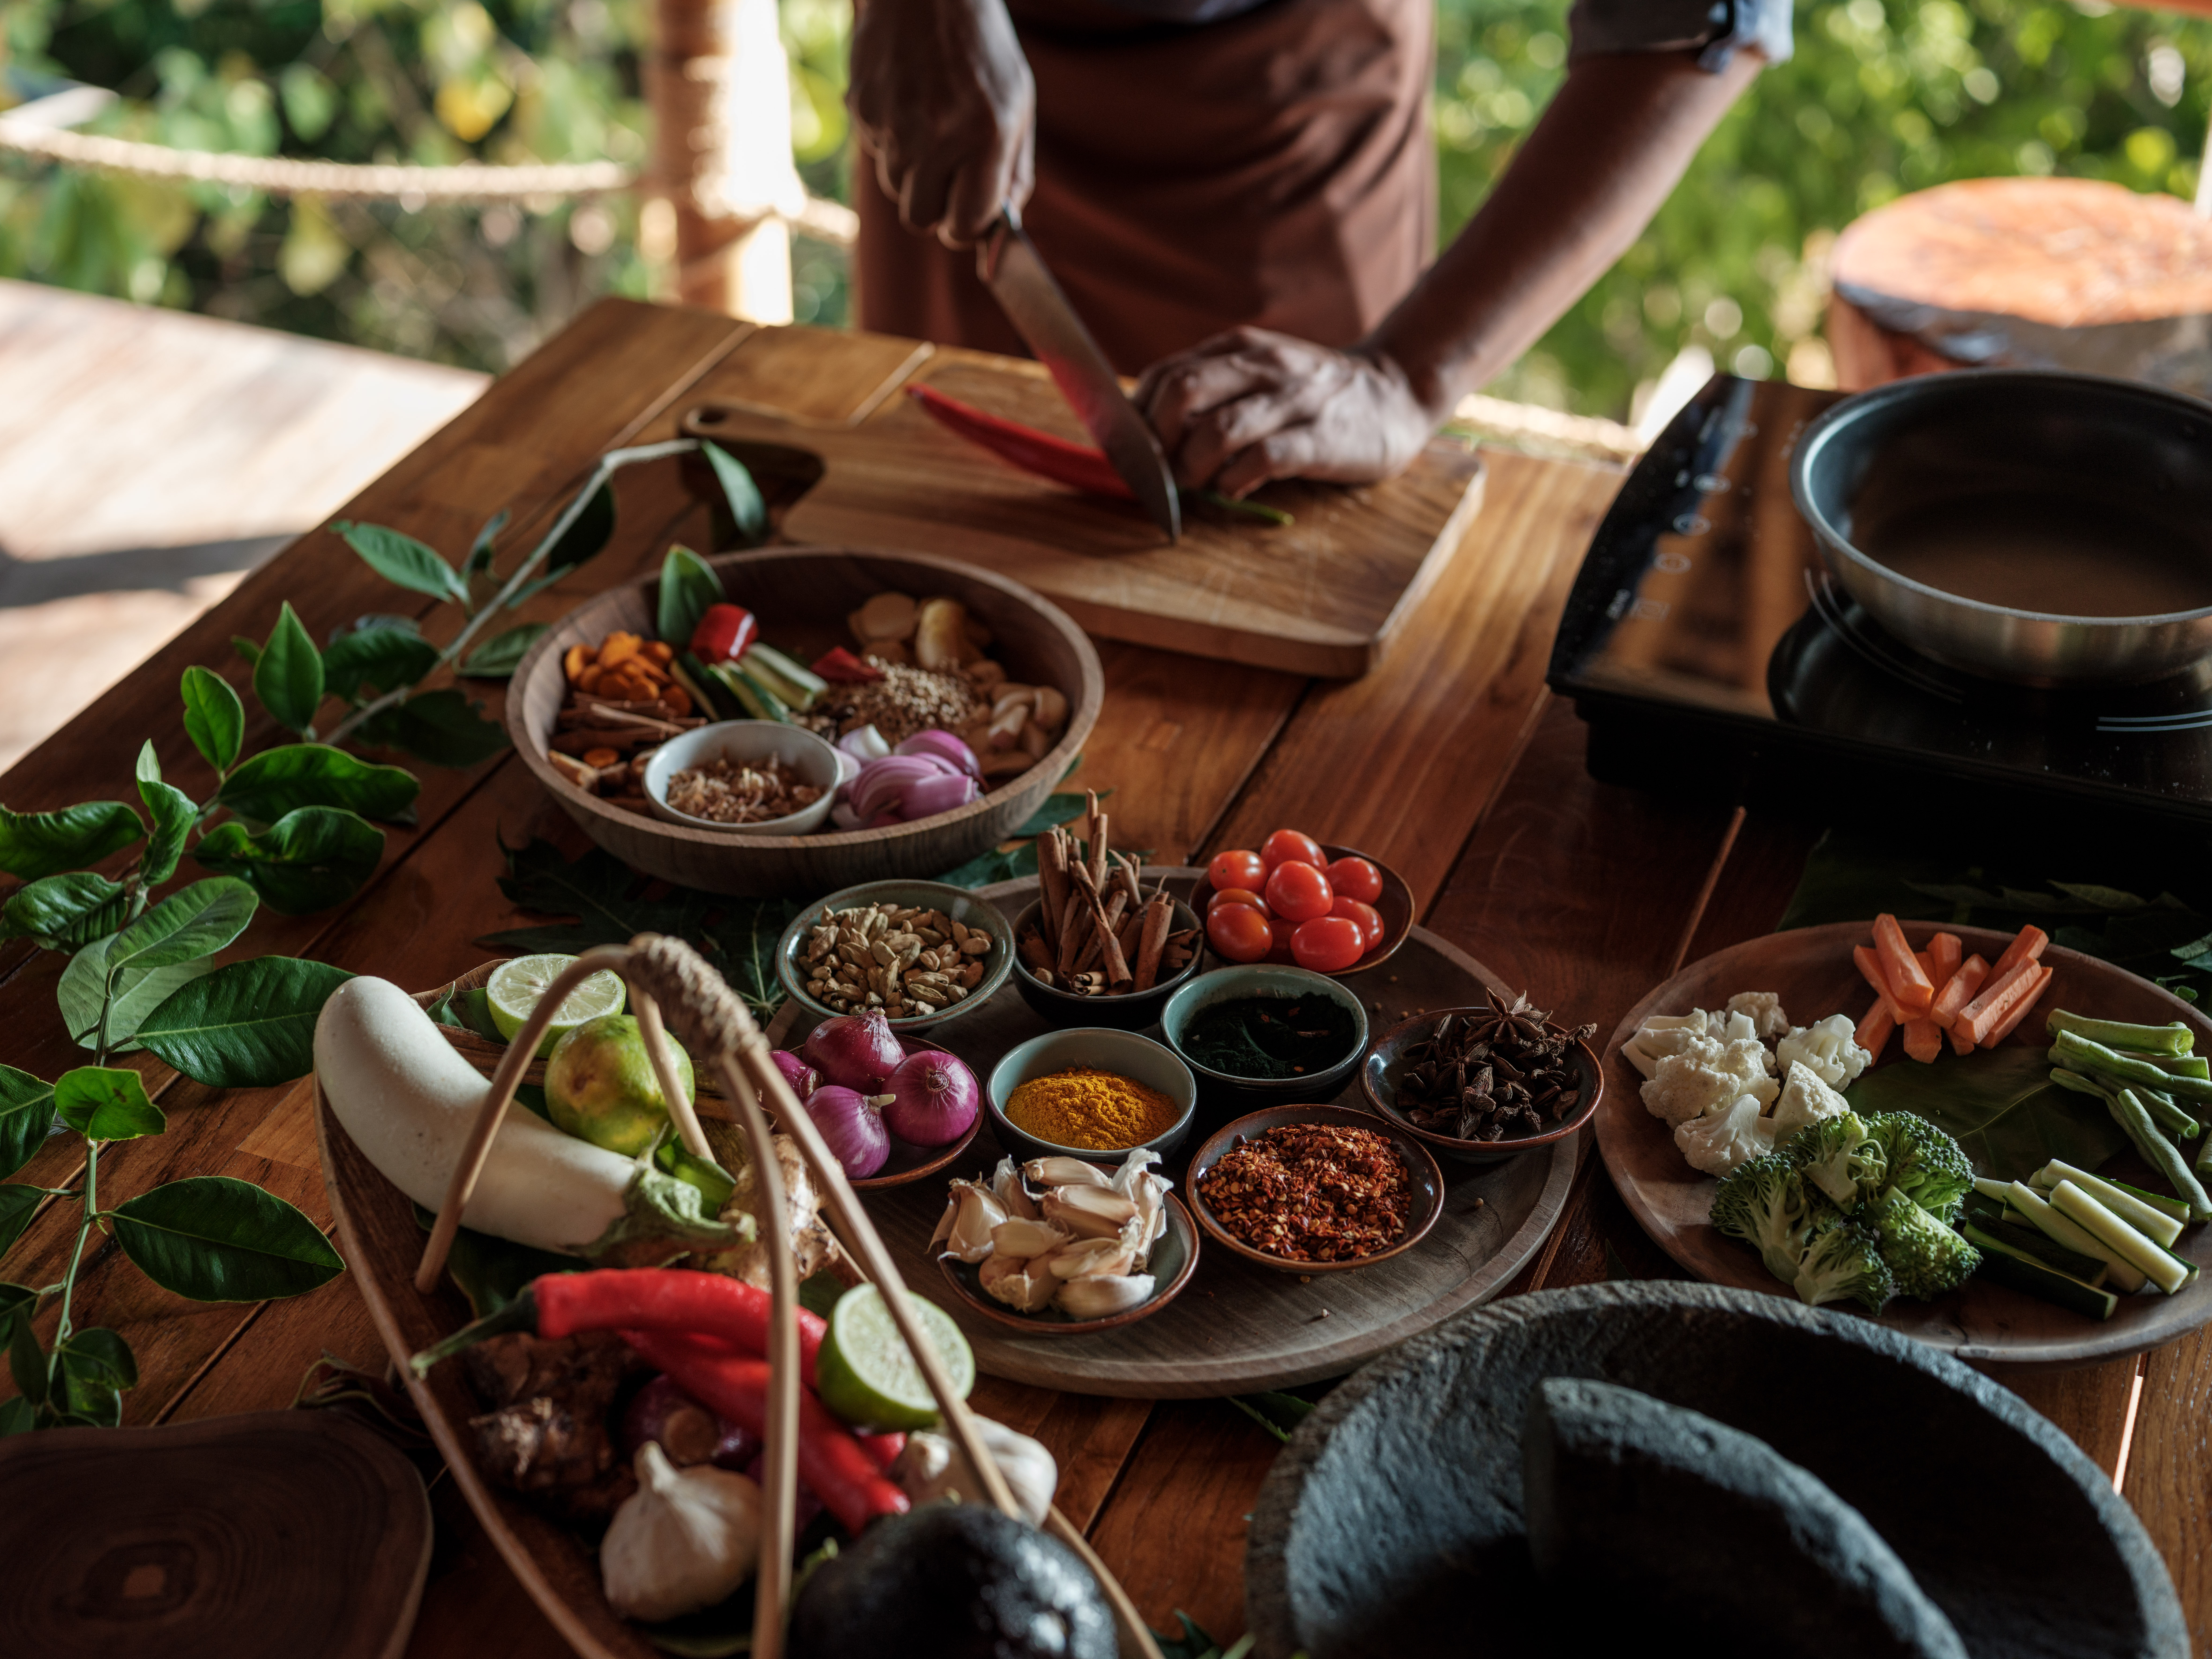 chef_teaching_cutting_red_chilli_fresh_ingredients_prepared_pestle_mortar_on_table_cooking_class